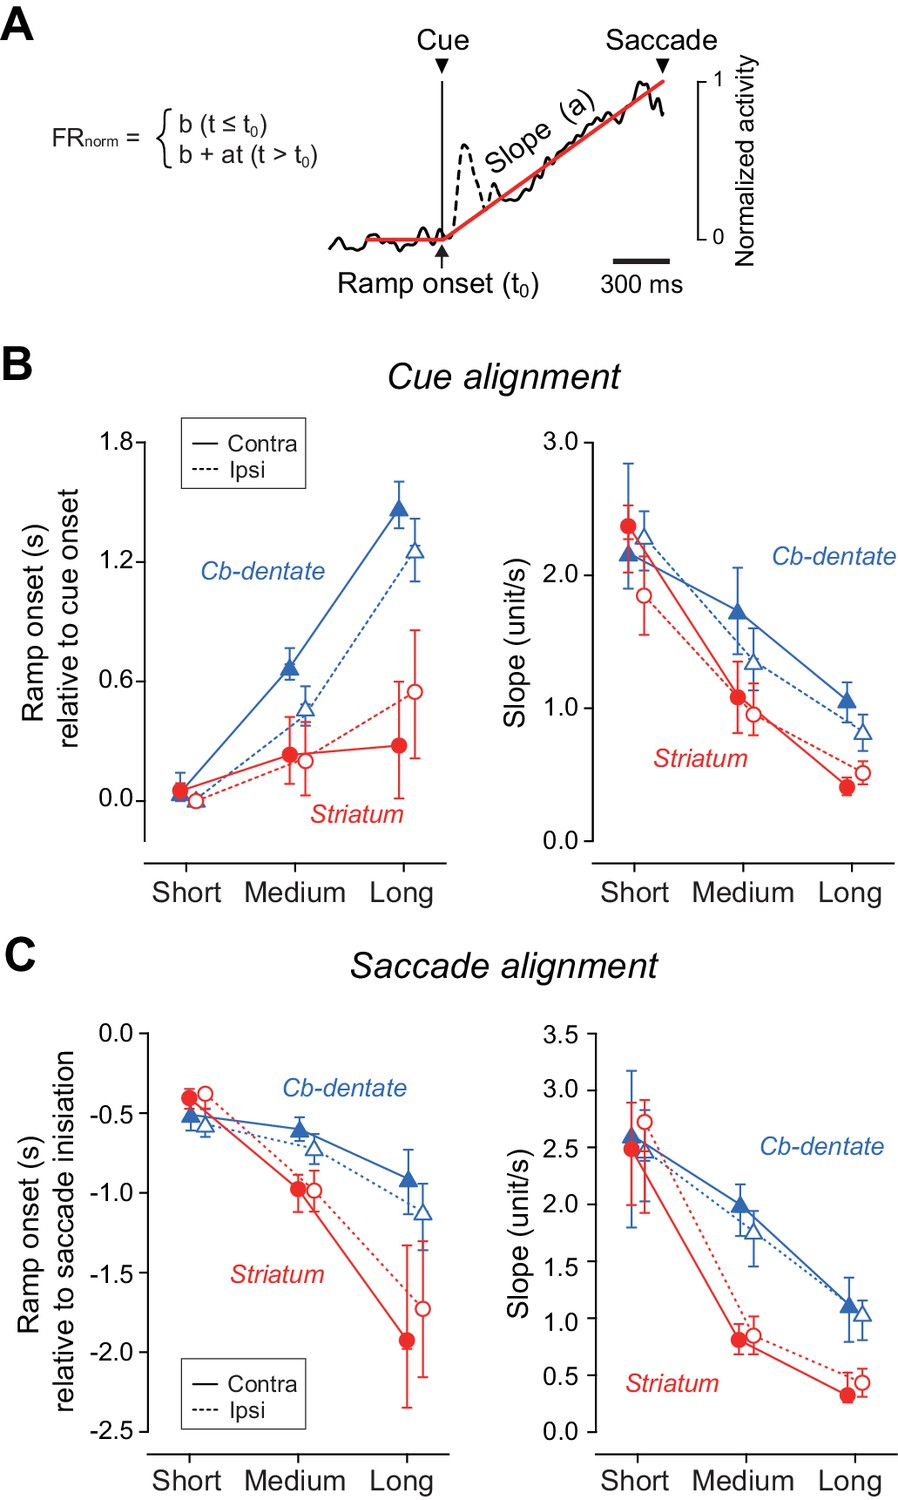 Different Contributions Of Preparatory Activity In The Basal Ganglia Longinterval Pulse Generator Circuit Diagram Quantitative Analysis For Time Course Ramping During Delay Interval